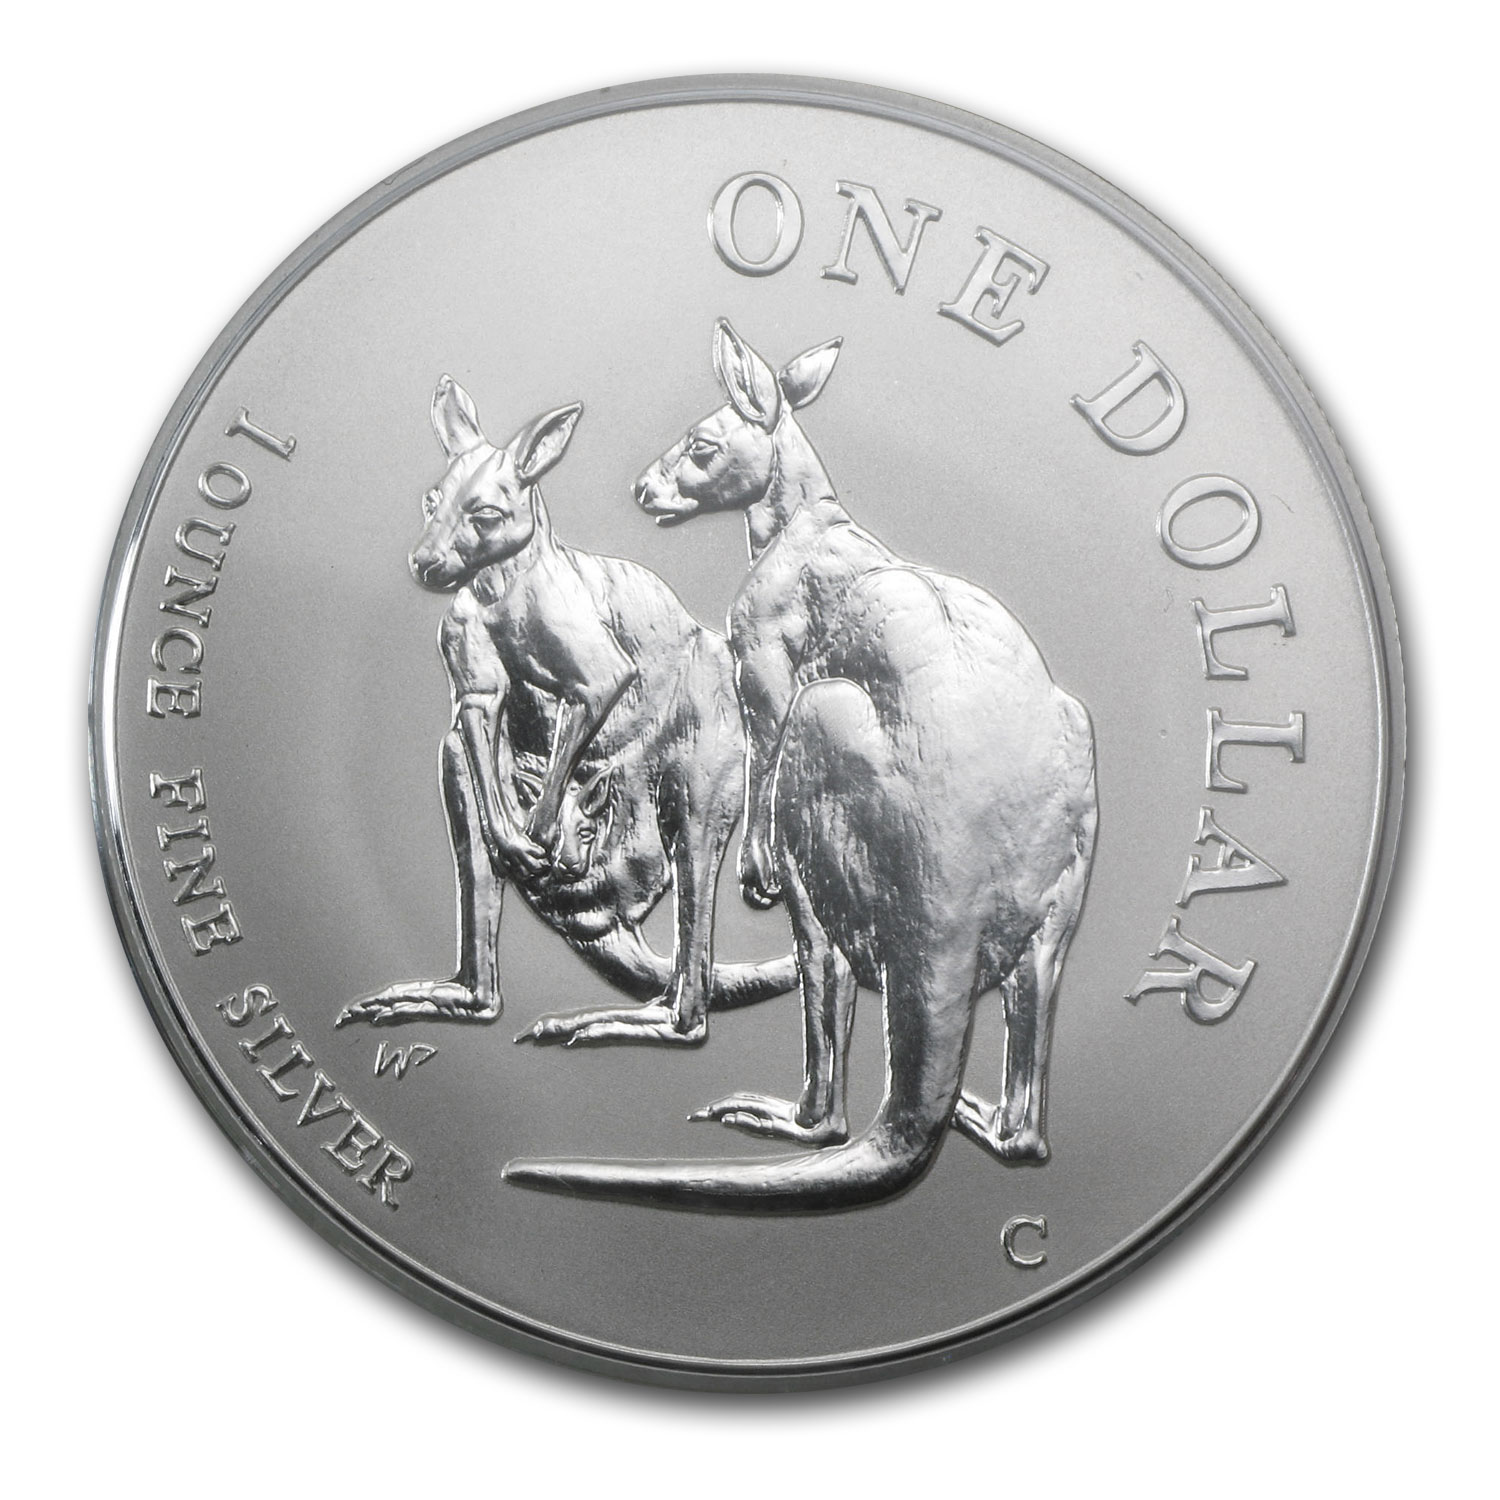 1999 1 oz Australian Silver Kangaroo (In Display Card)